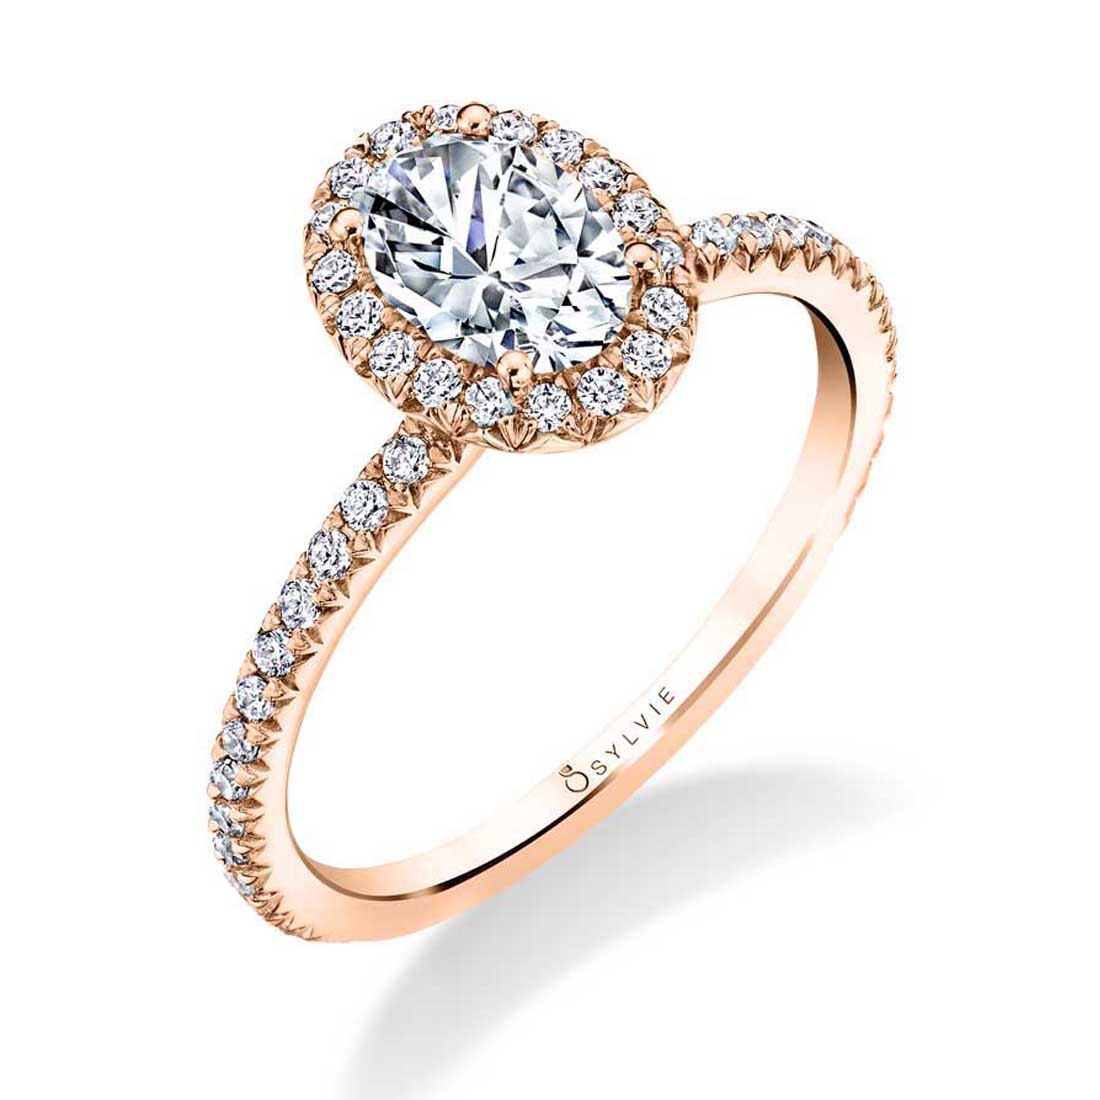 Sylvie Vivian 14k Rose Gold Oval Halo Engagement Ring